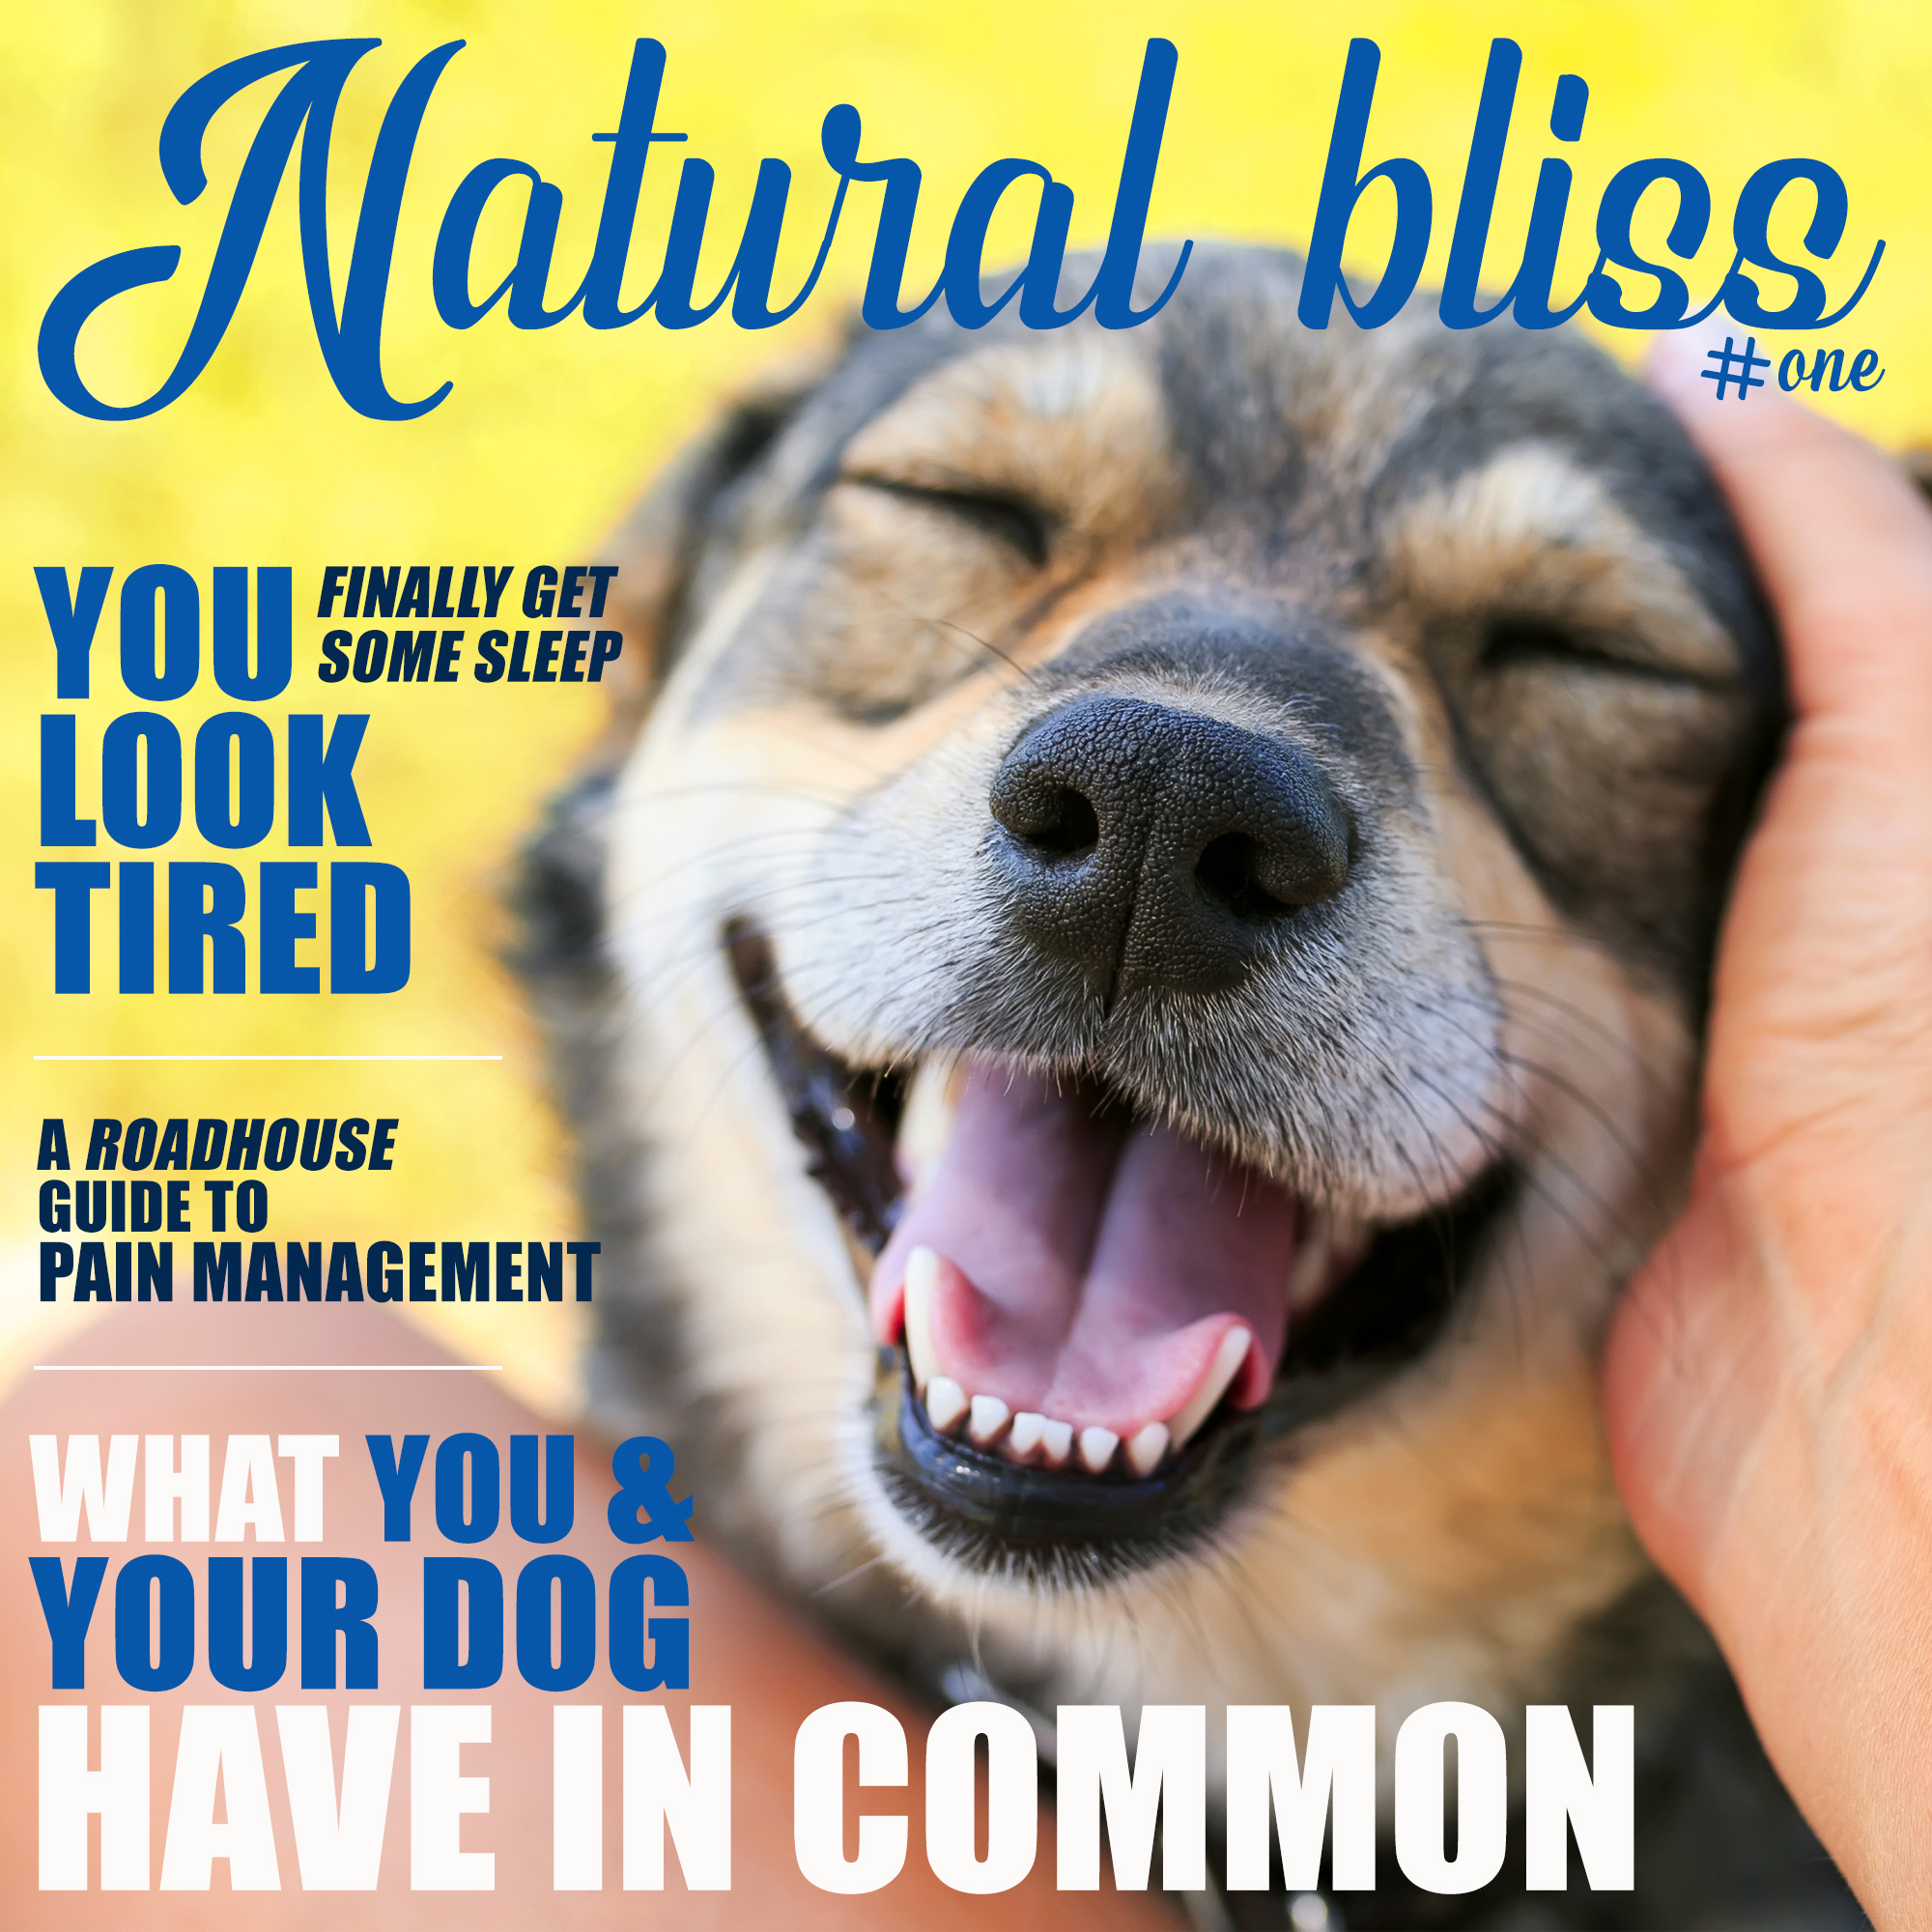 CHECK OUT OUR NEWEST MAGAZINE! CLICK TO READ